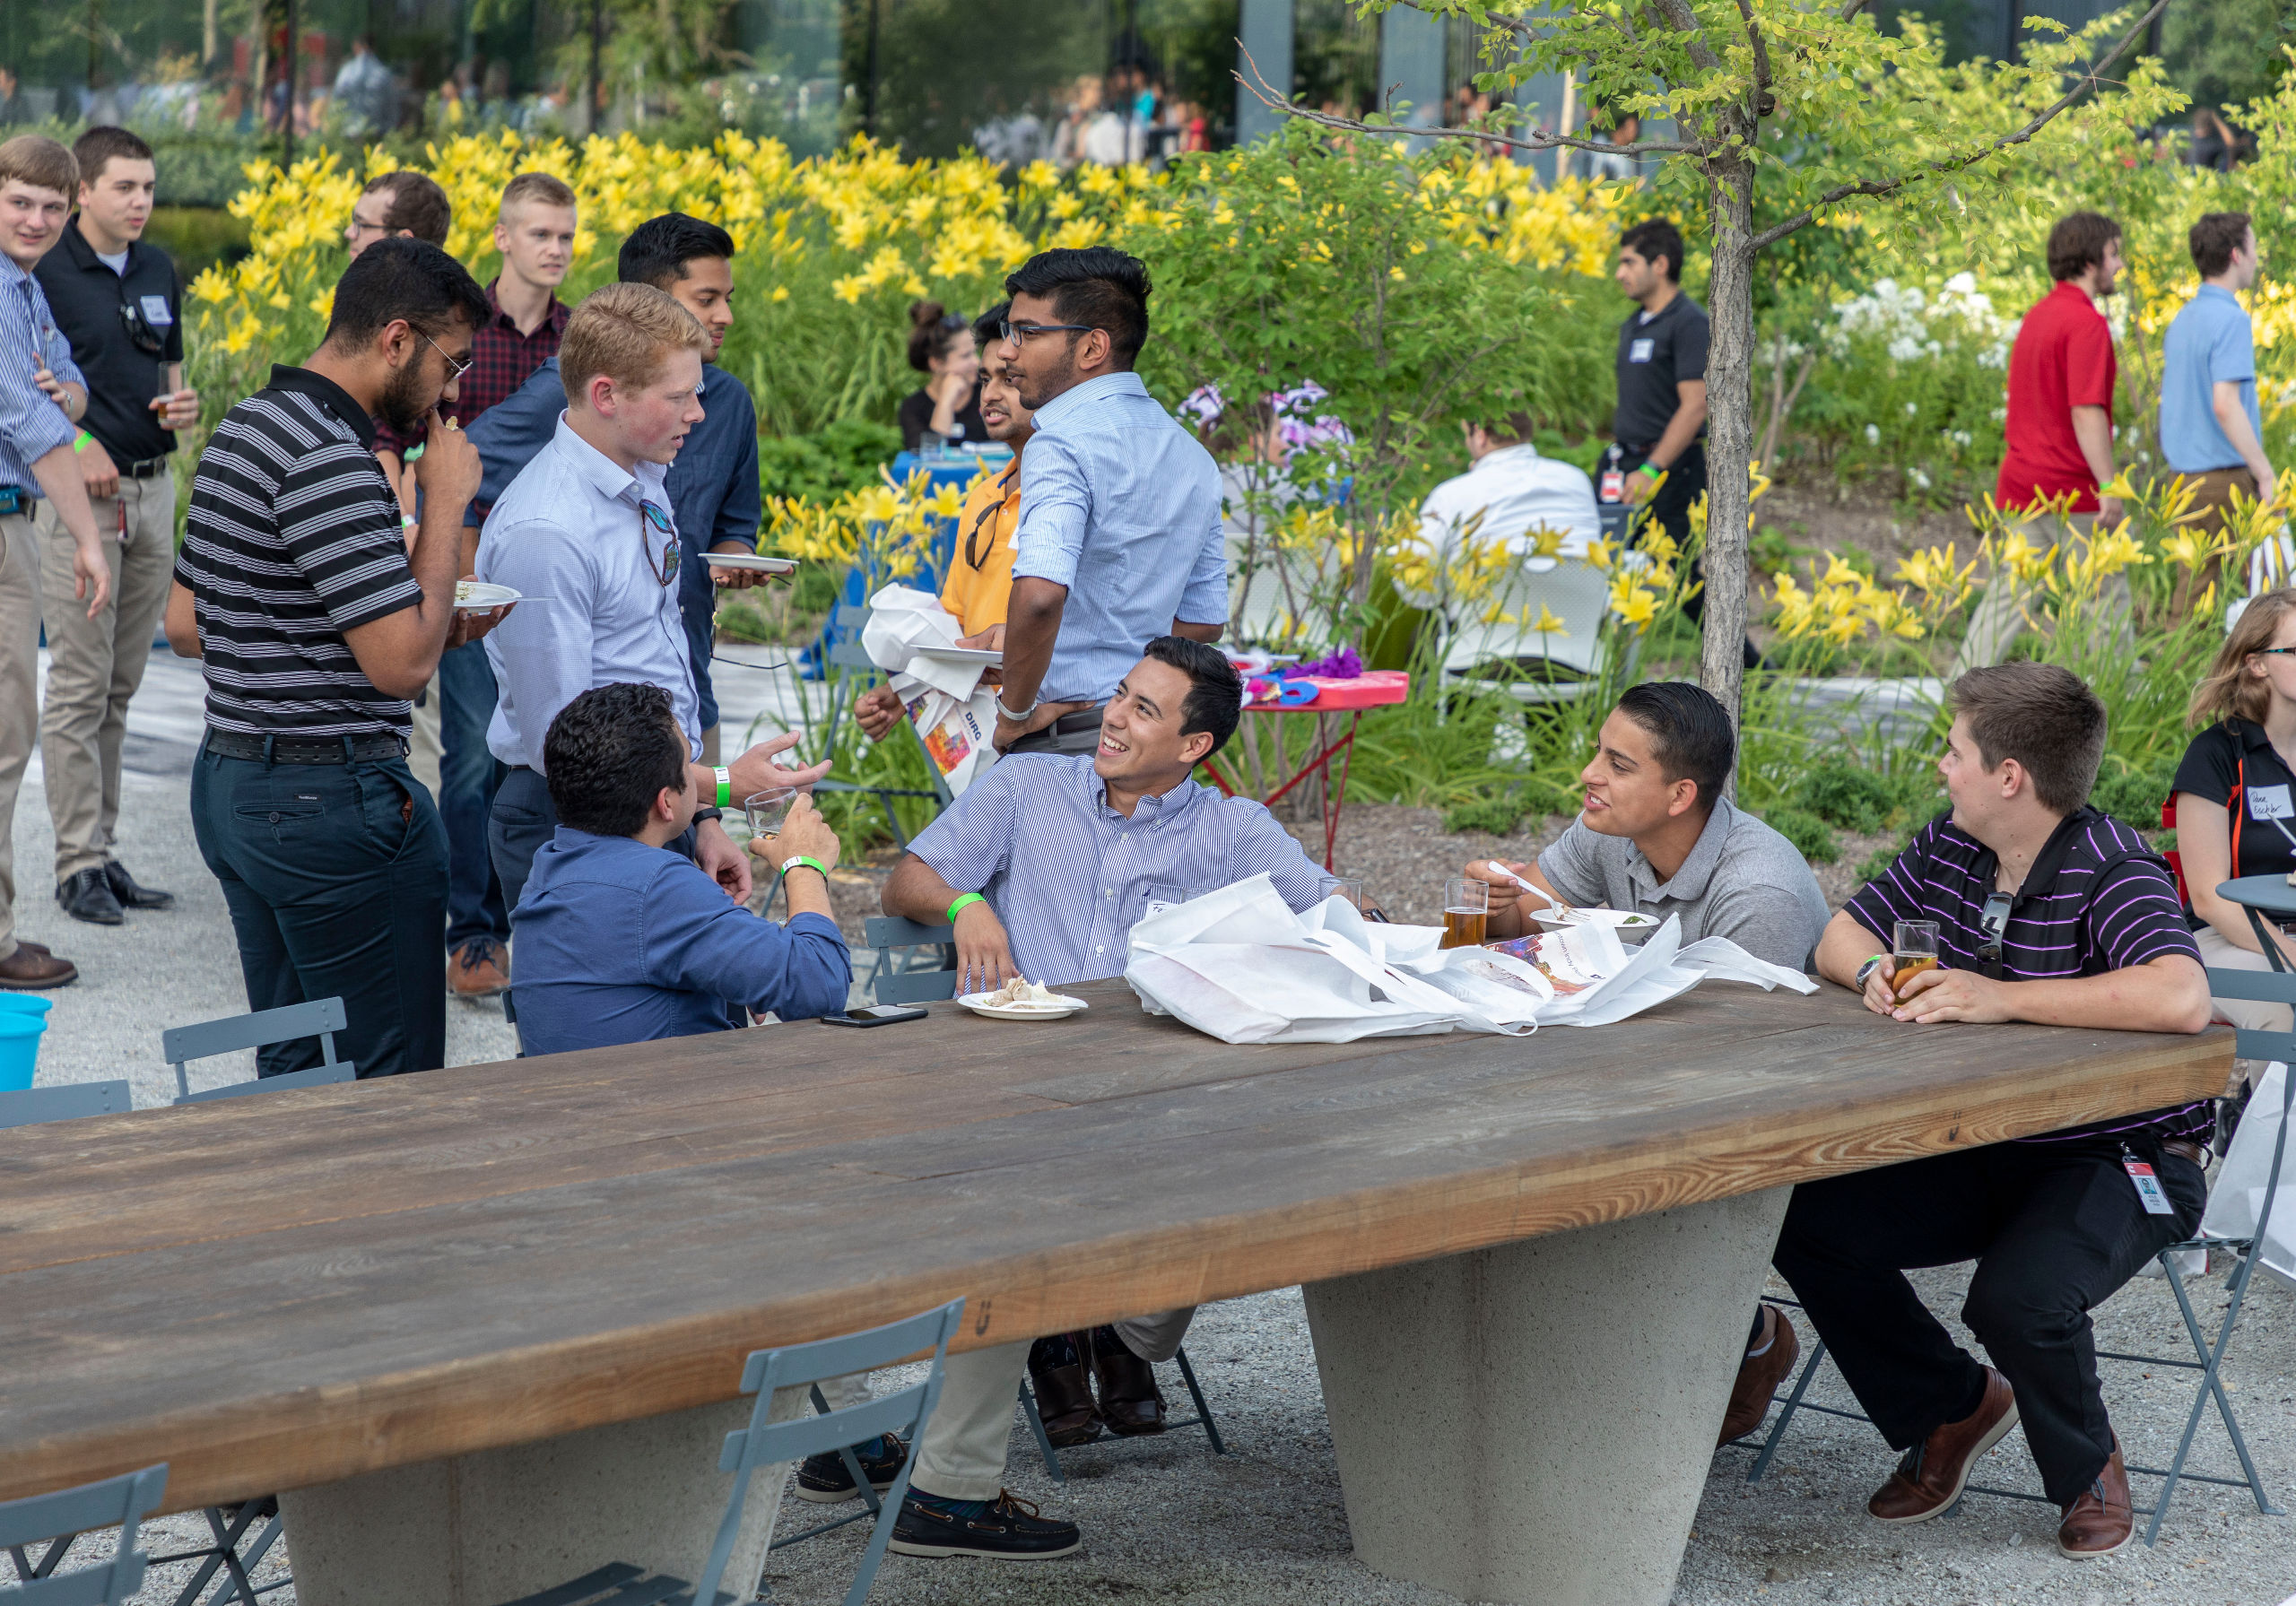 Group of young men sitting at outdoor table eating and drinking.